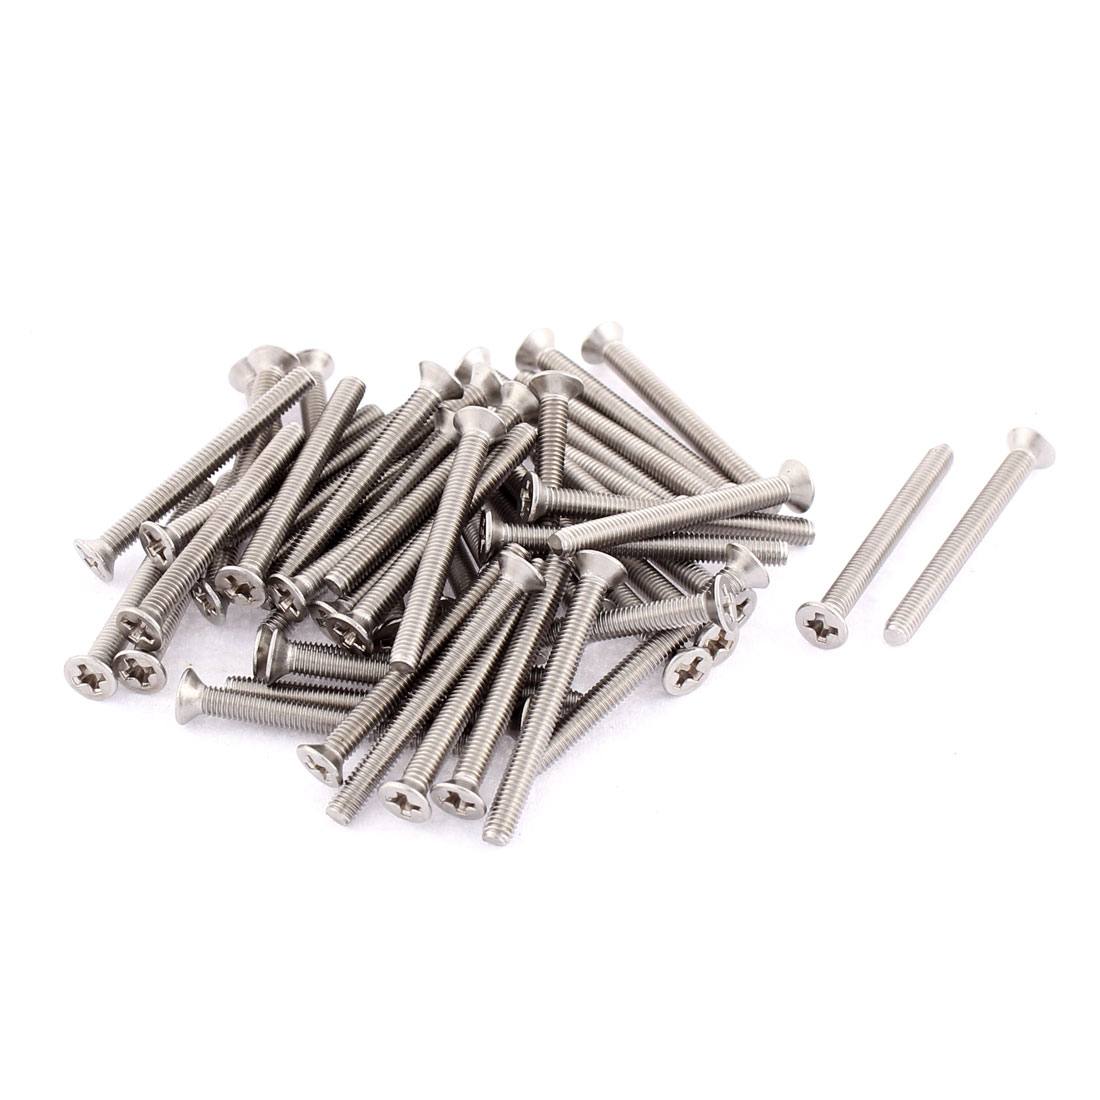 M3 x 30mm Phillips Flat Head Countersunk Bolts Machine Screws 50pcs